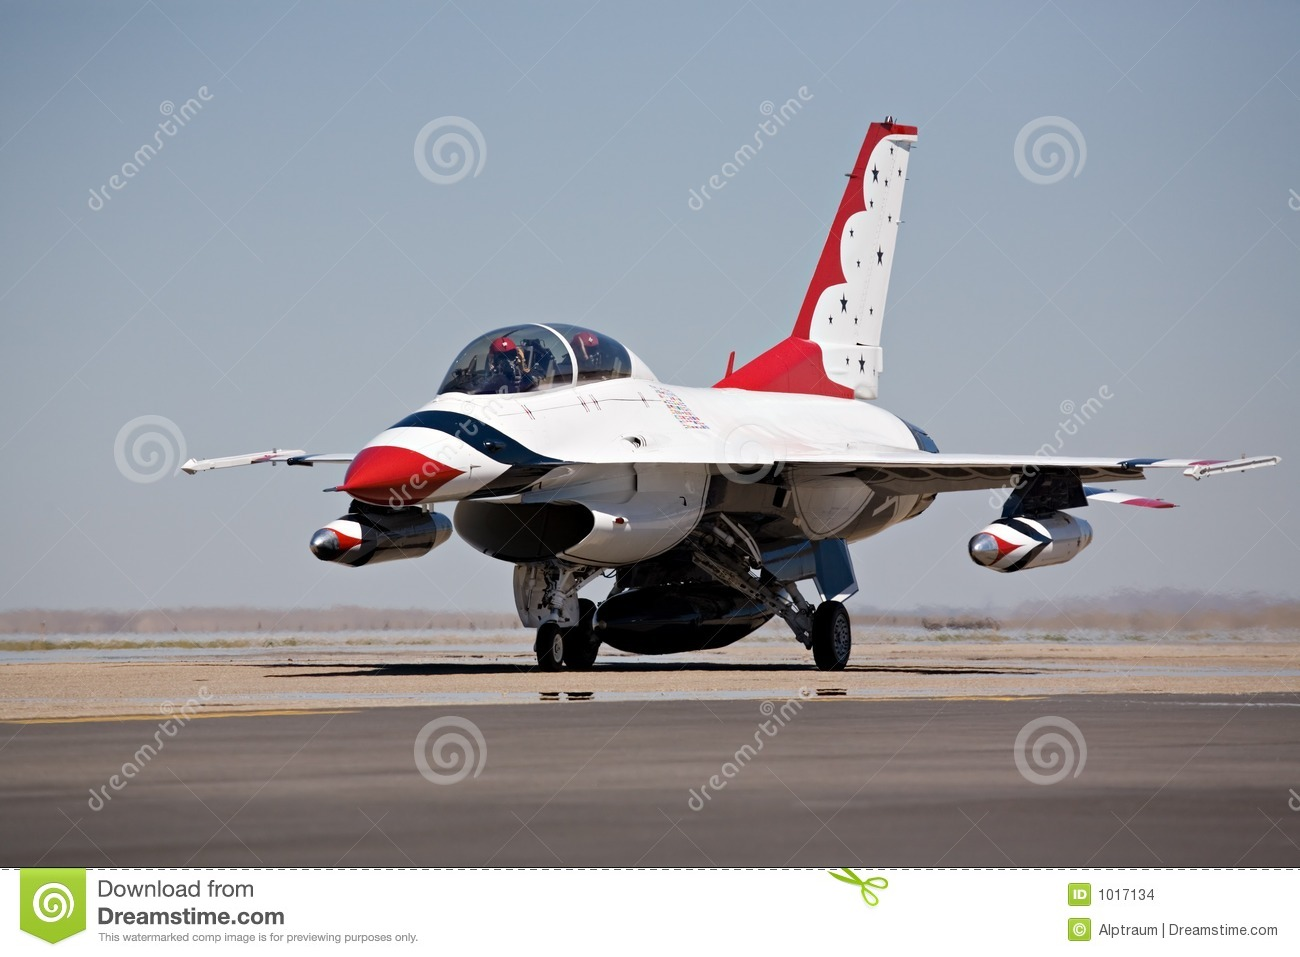 F16 taxi for takeoff stock photo  Image of pilots, runway - 1017134